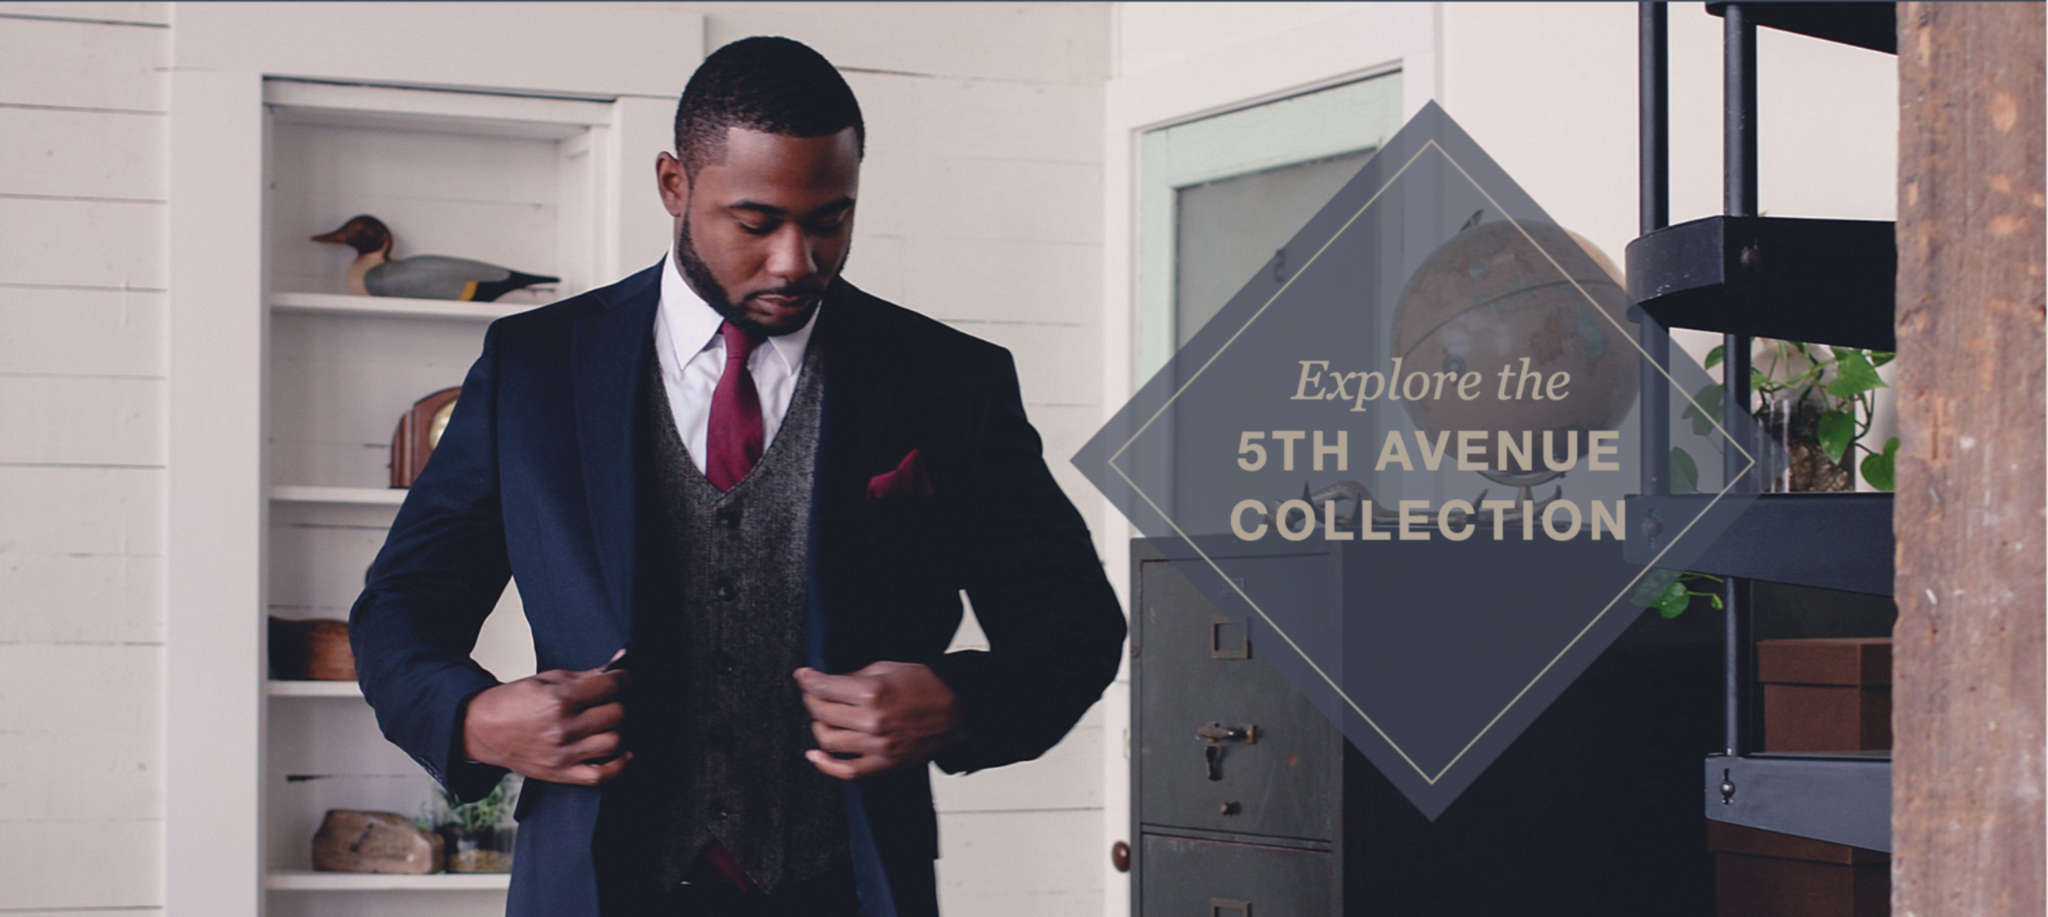 5th Avenue Collection